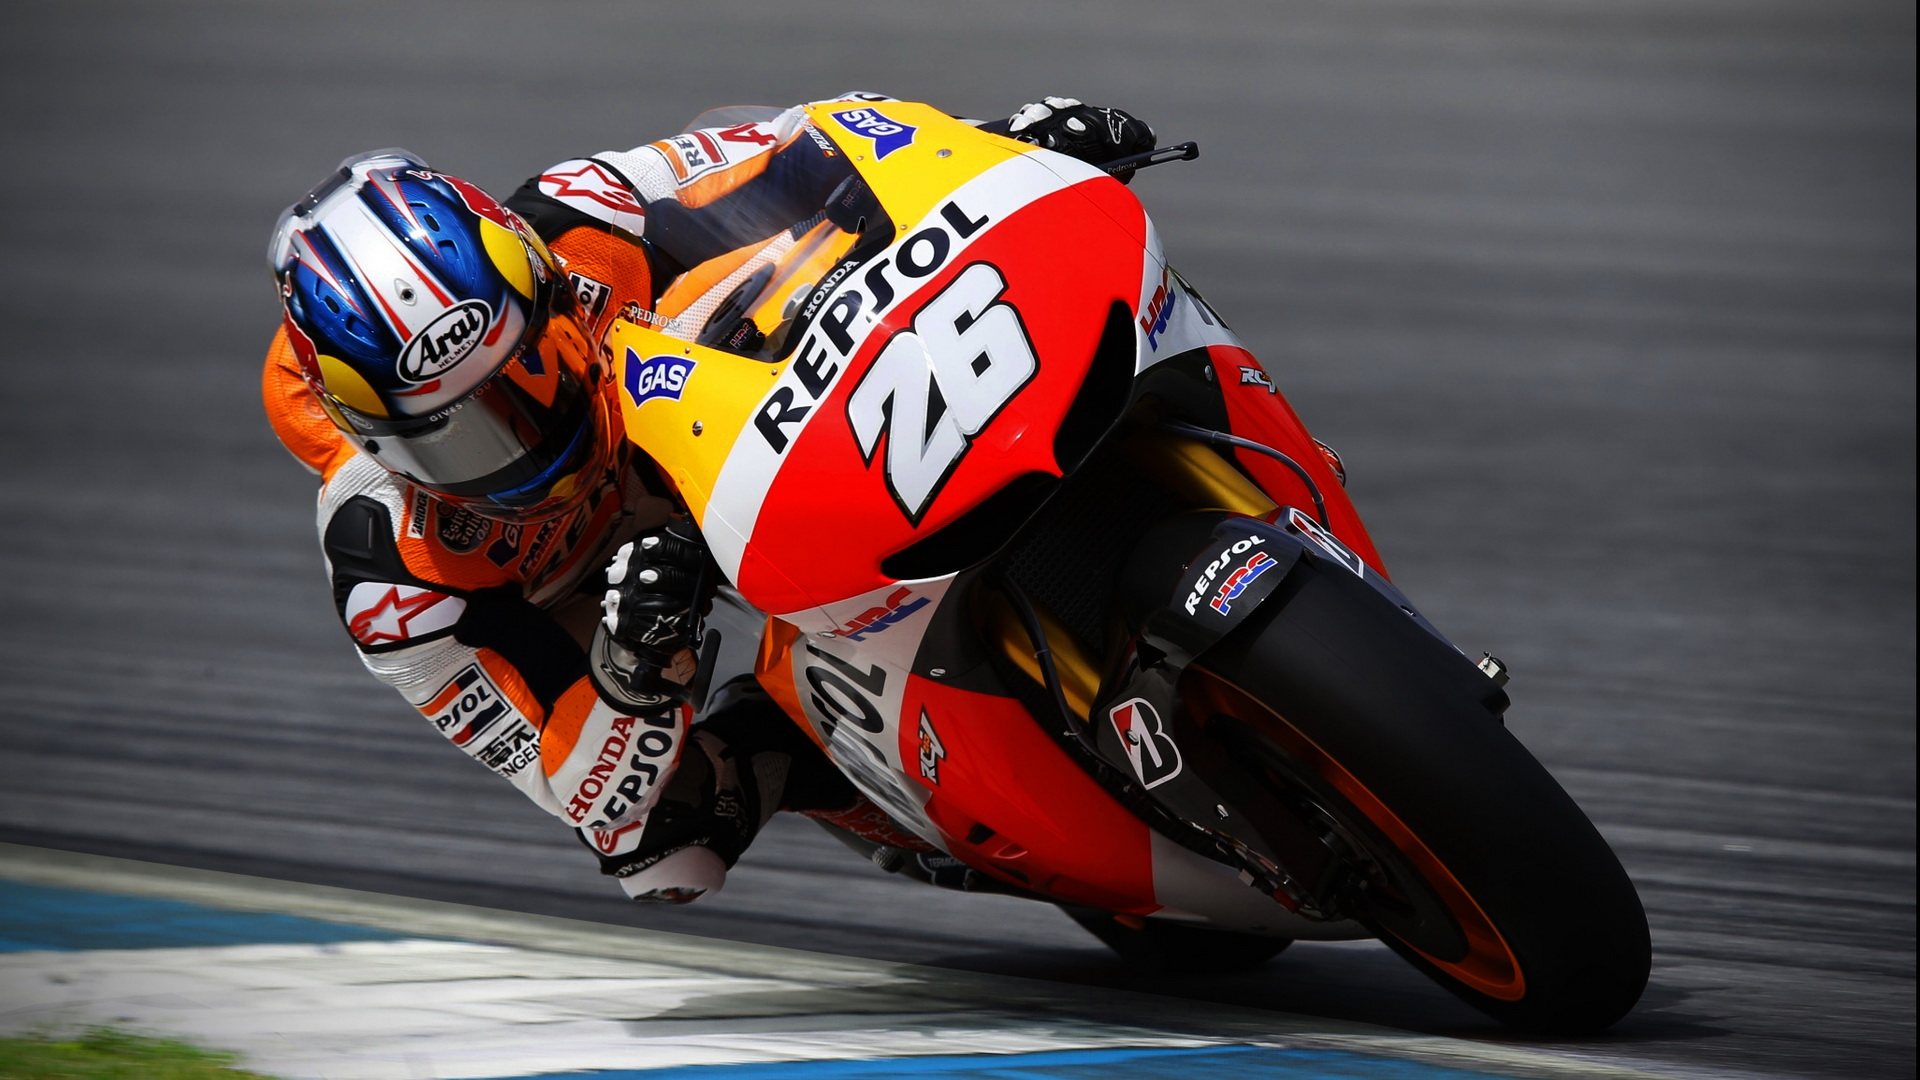 repsol bike desktop wallpaper 49635